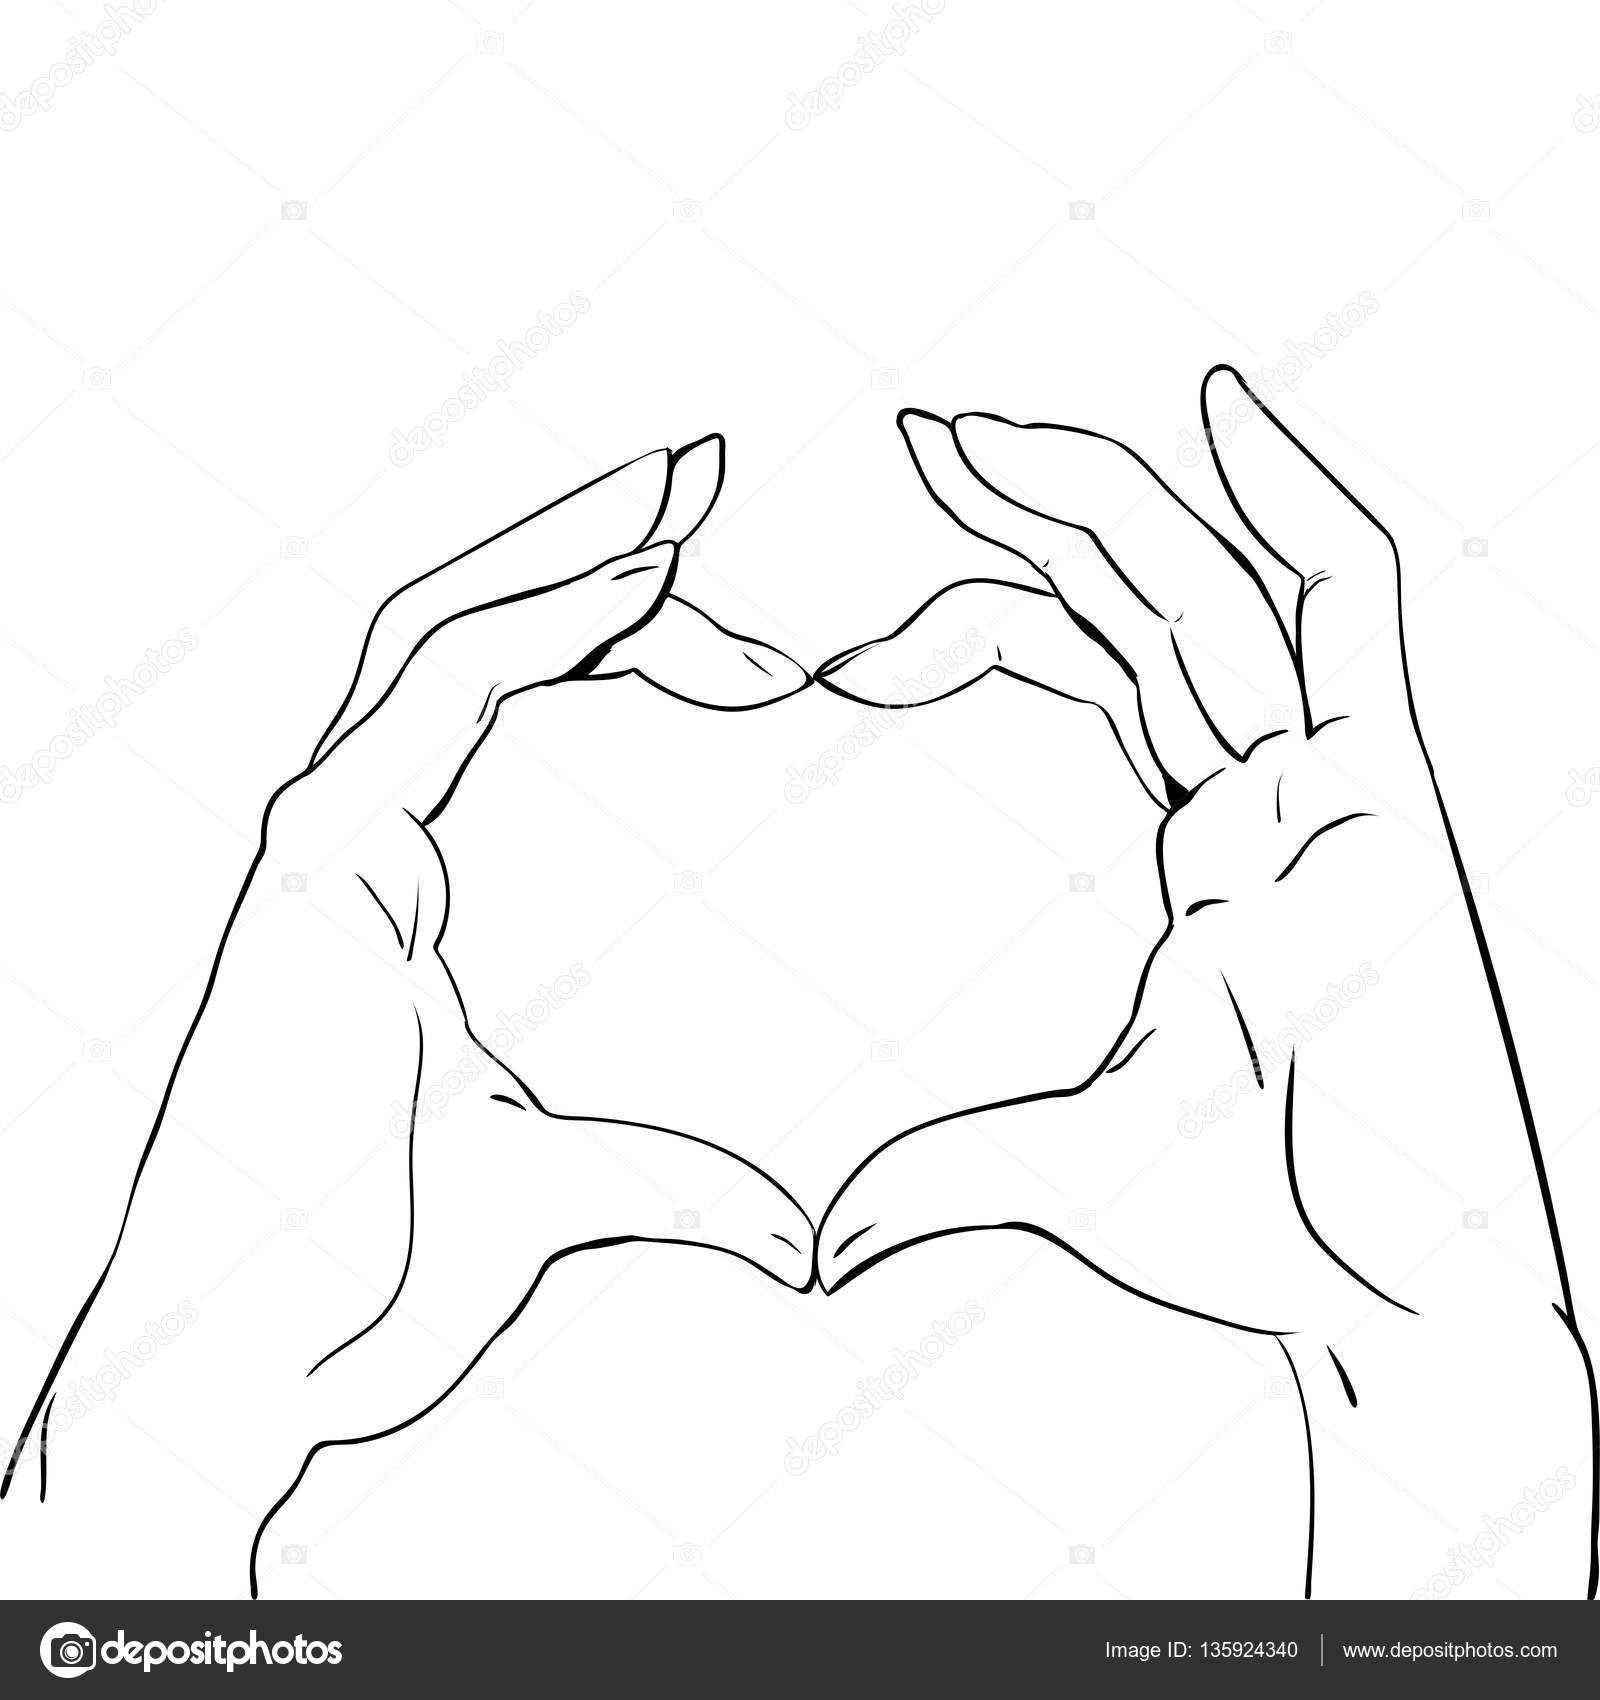 1600x1700 Hands In Heart Form, Sketch Black And White Vector Illustration